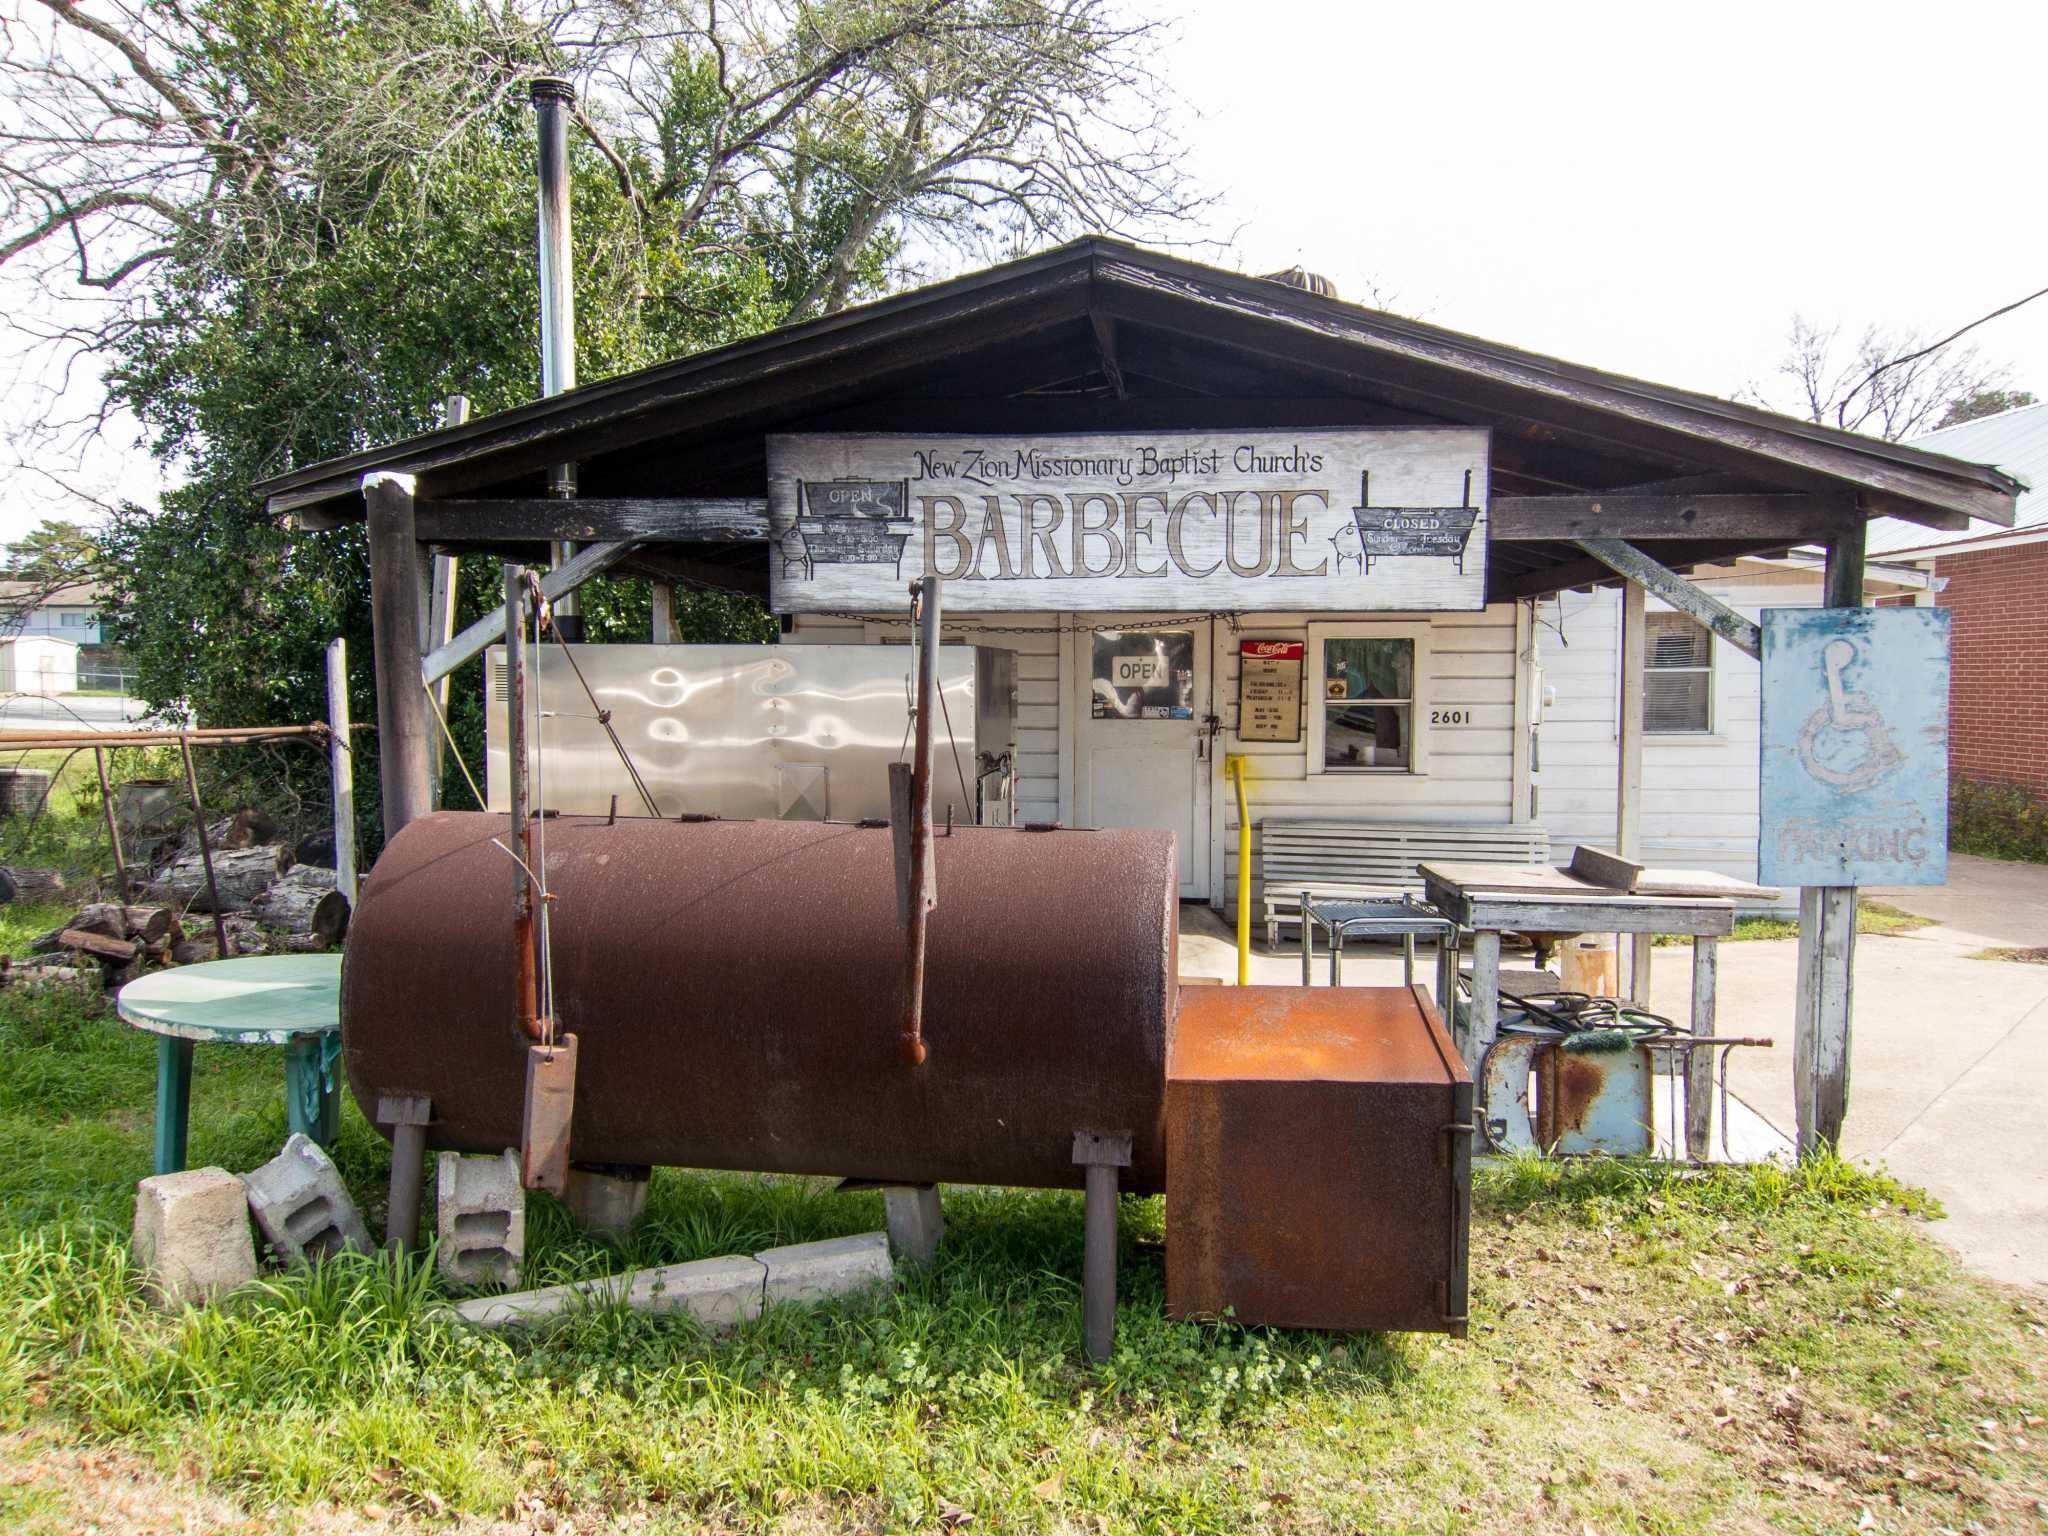 Changing tastes often why a barbecue joint closes